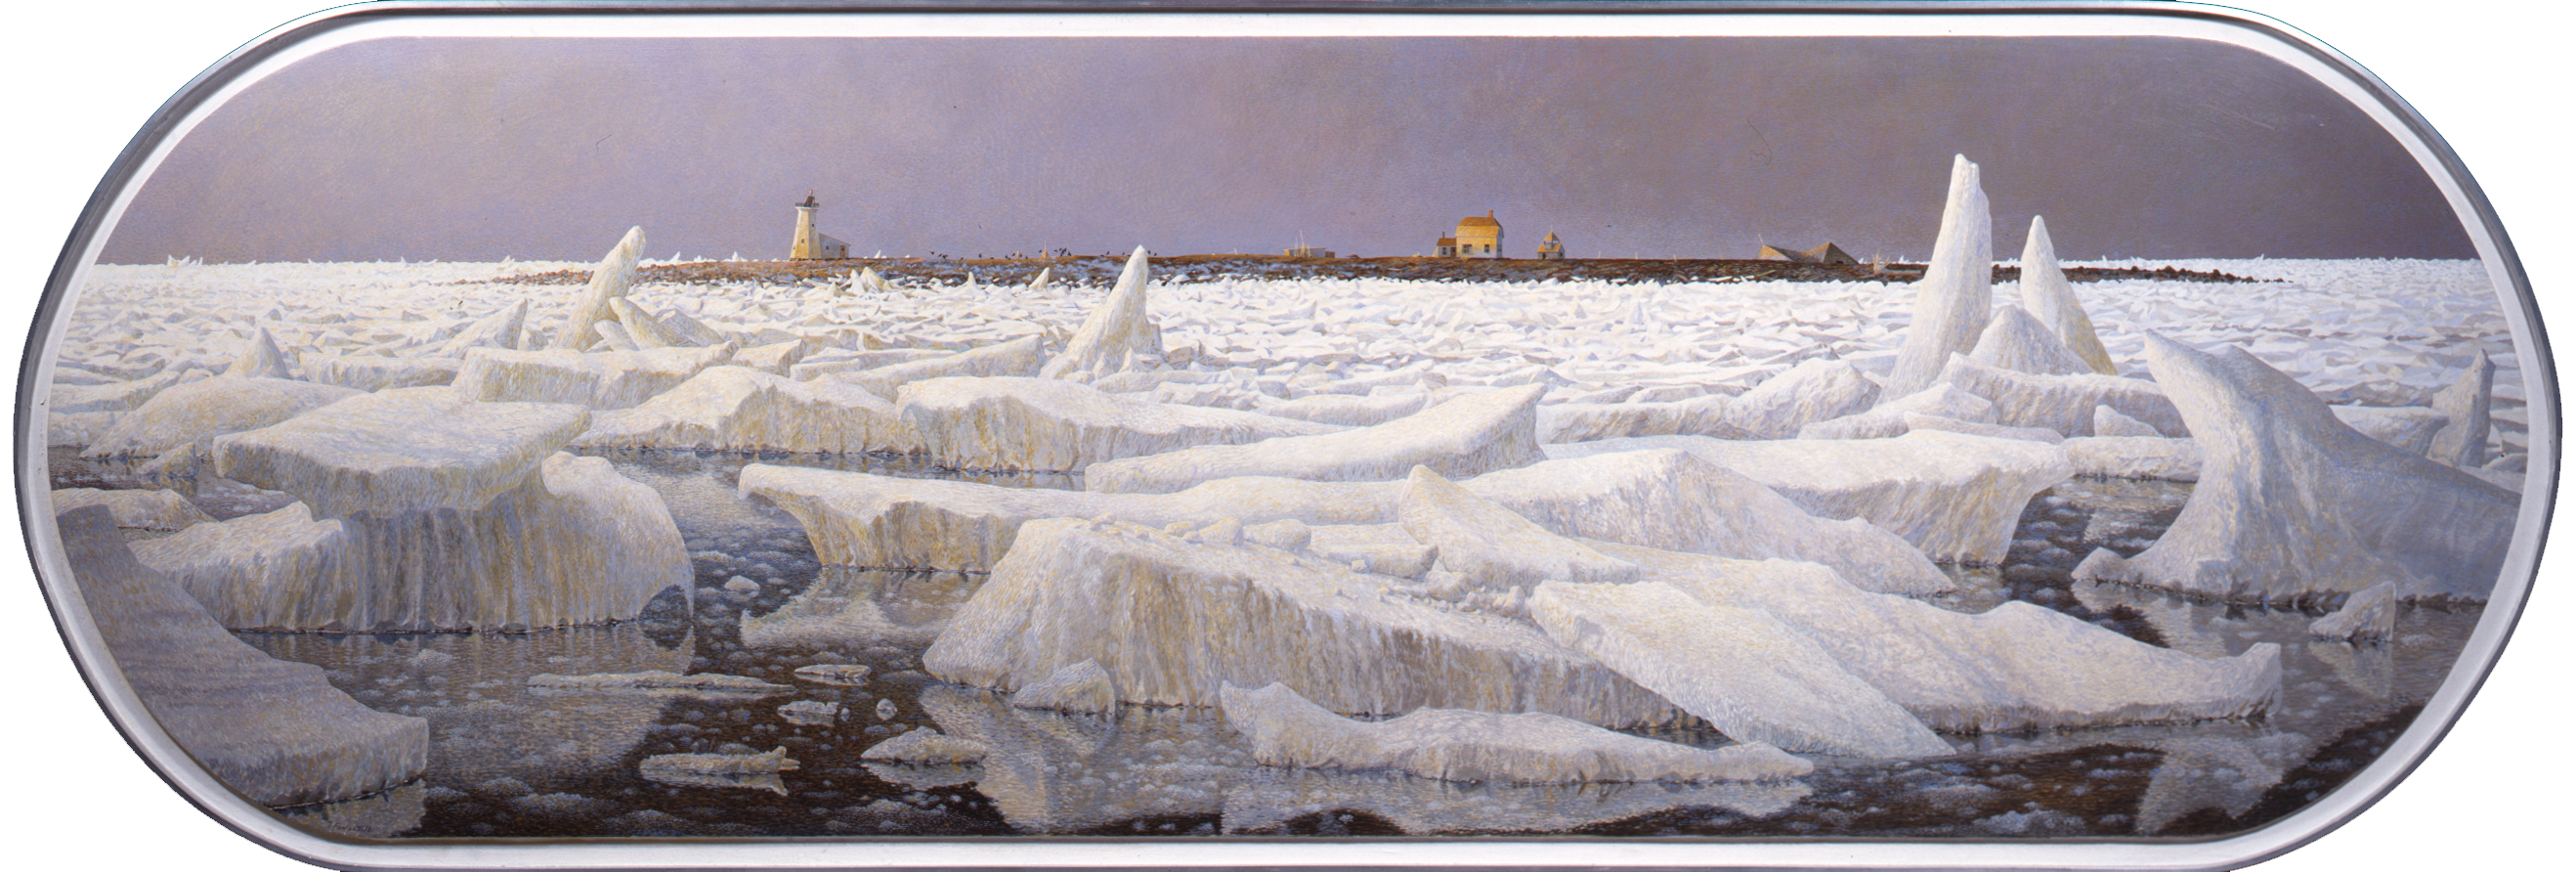 Tom Forrestall, Island in the Ice, 1987. Egg tempera on Masonite, 72.5 x 214.5 cm. Acquisition made possible with funds provided by Christopher Ondaatje, Toronto, Ontario, 1994. 1994.19